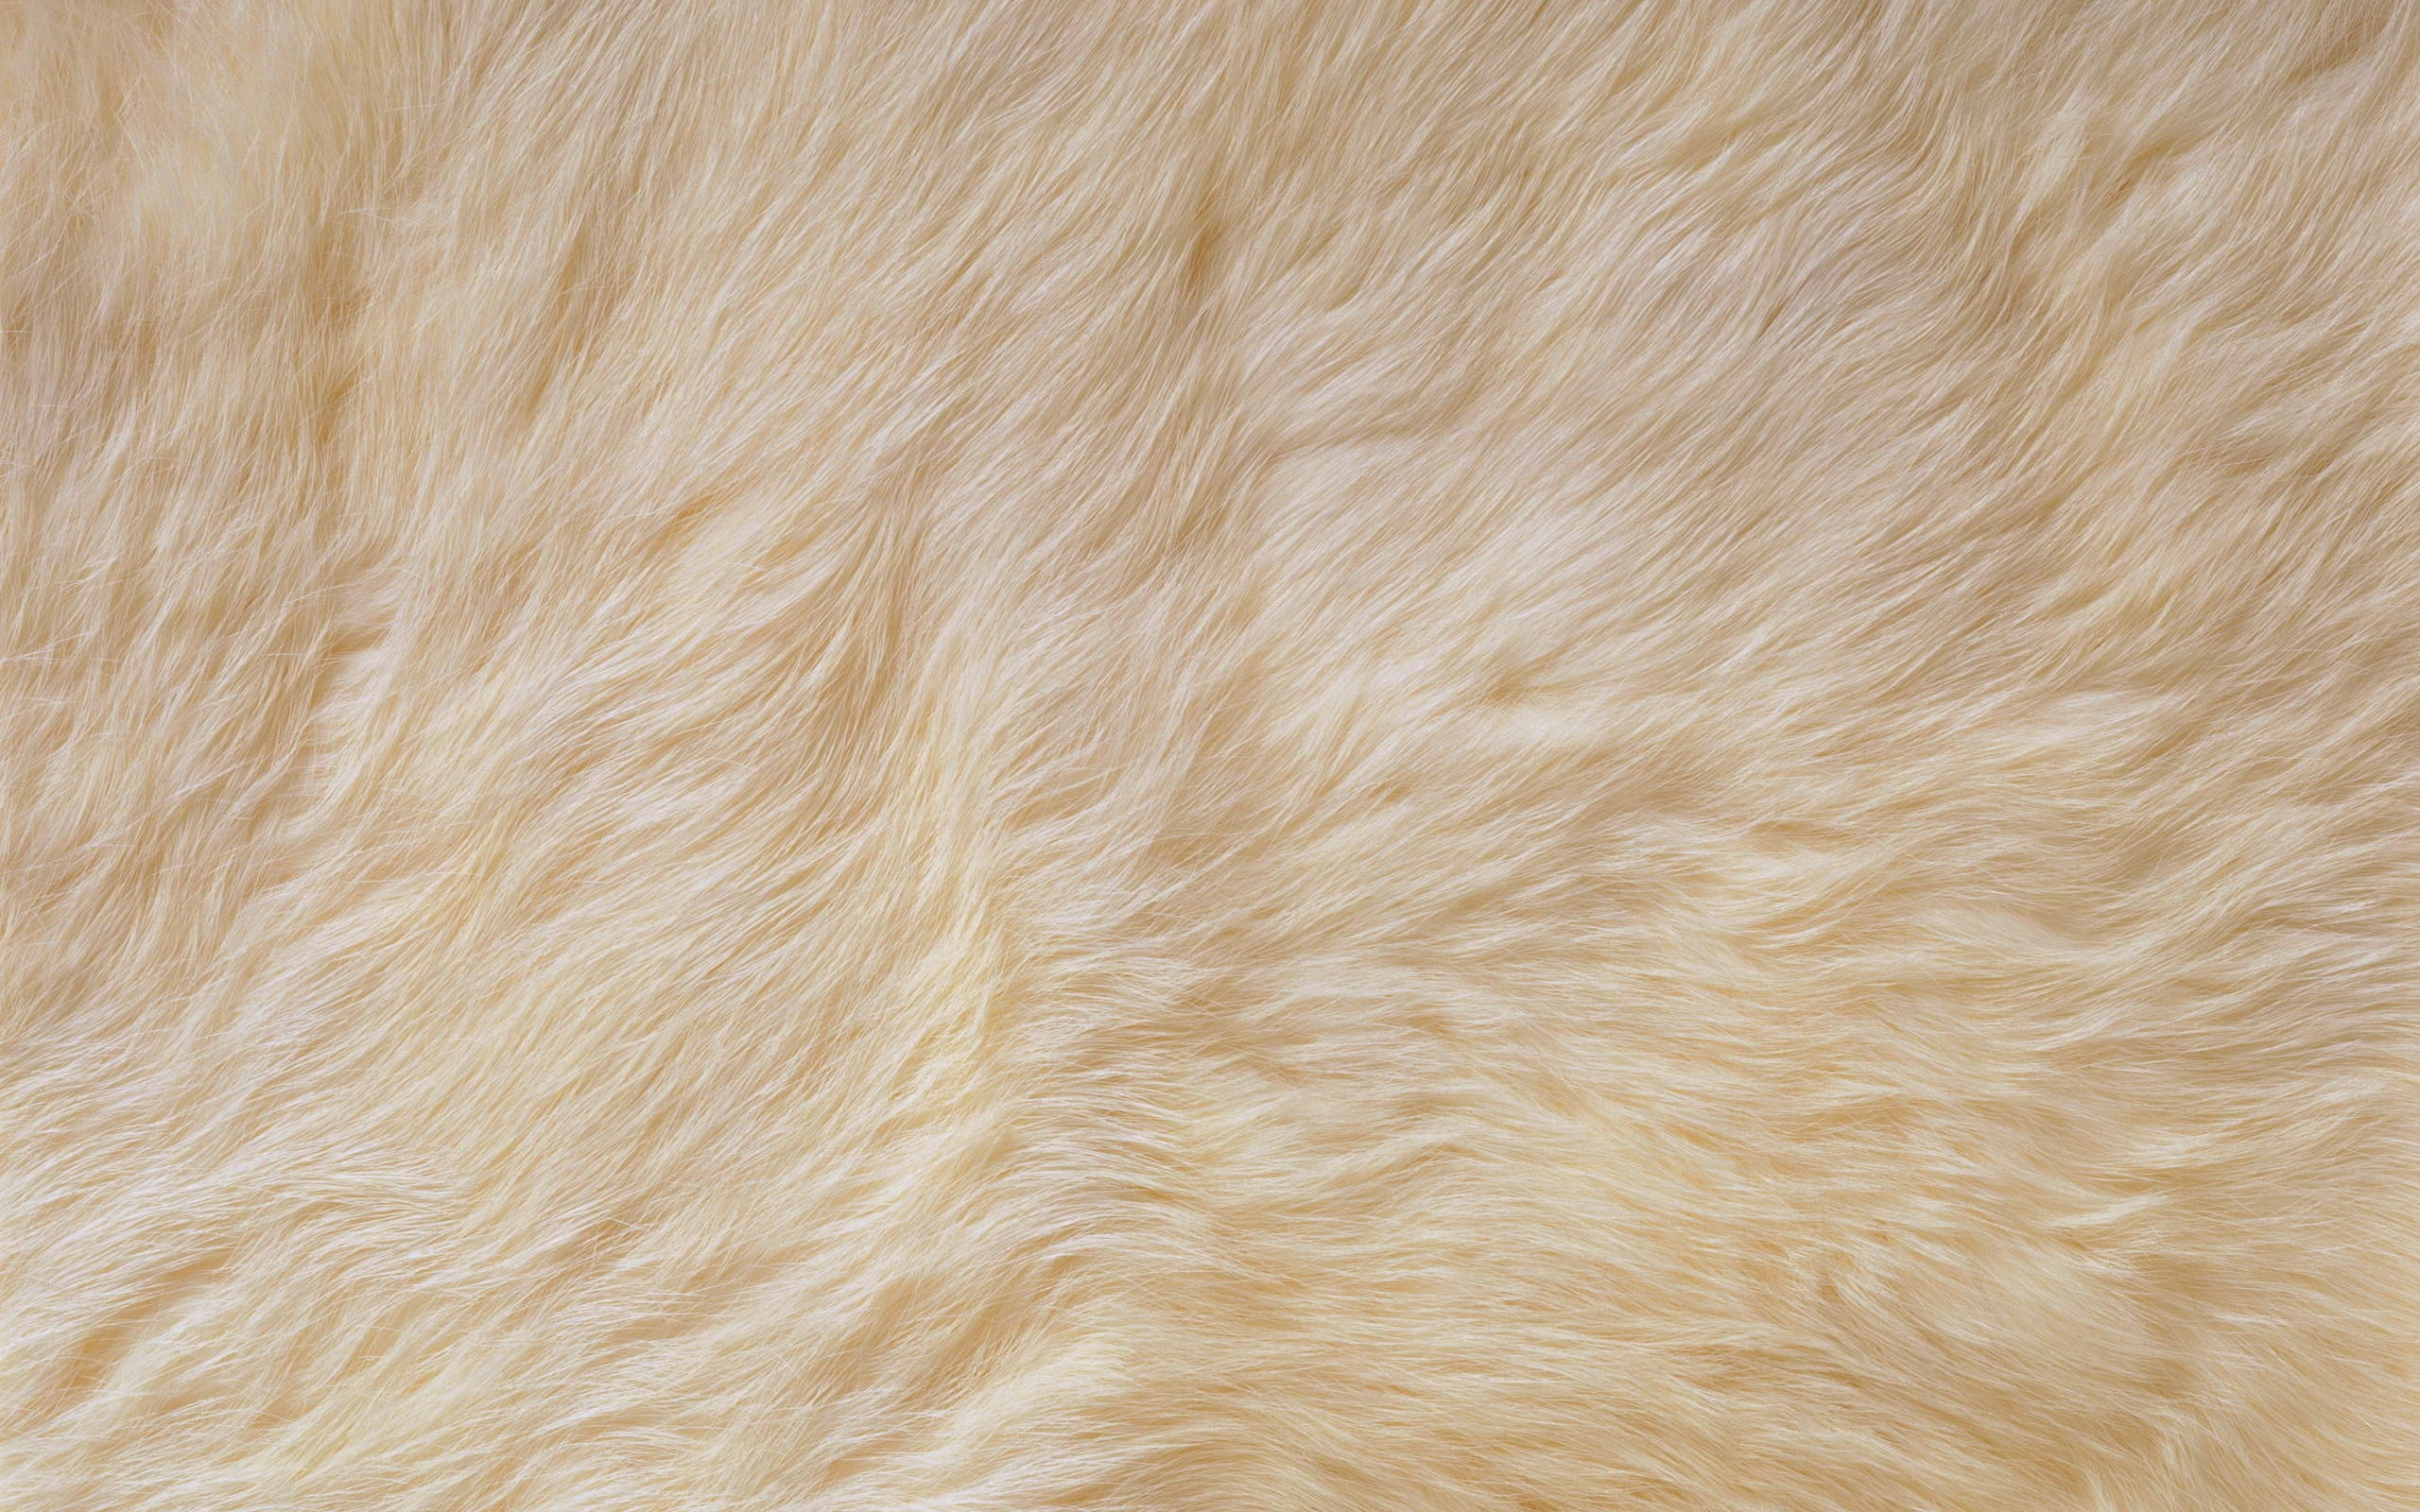 Fabulous Fur Rug for Floor Decoration Ideas: Fur Rug | Pink Sheepskin Rug | Shearling Blanket